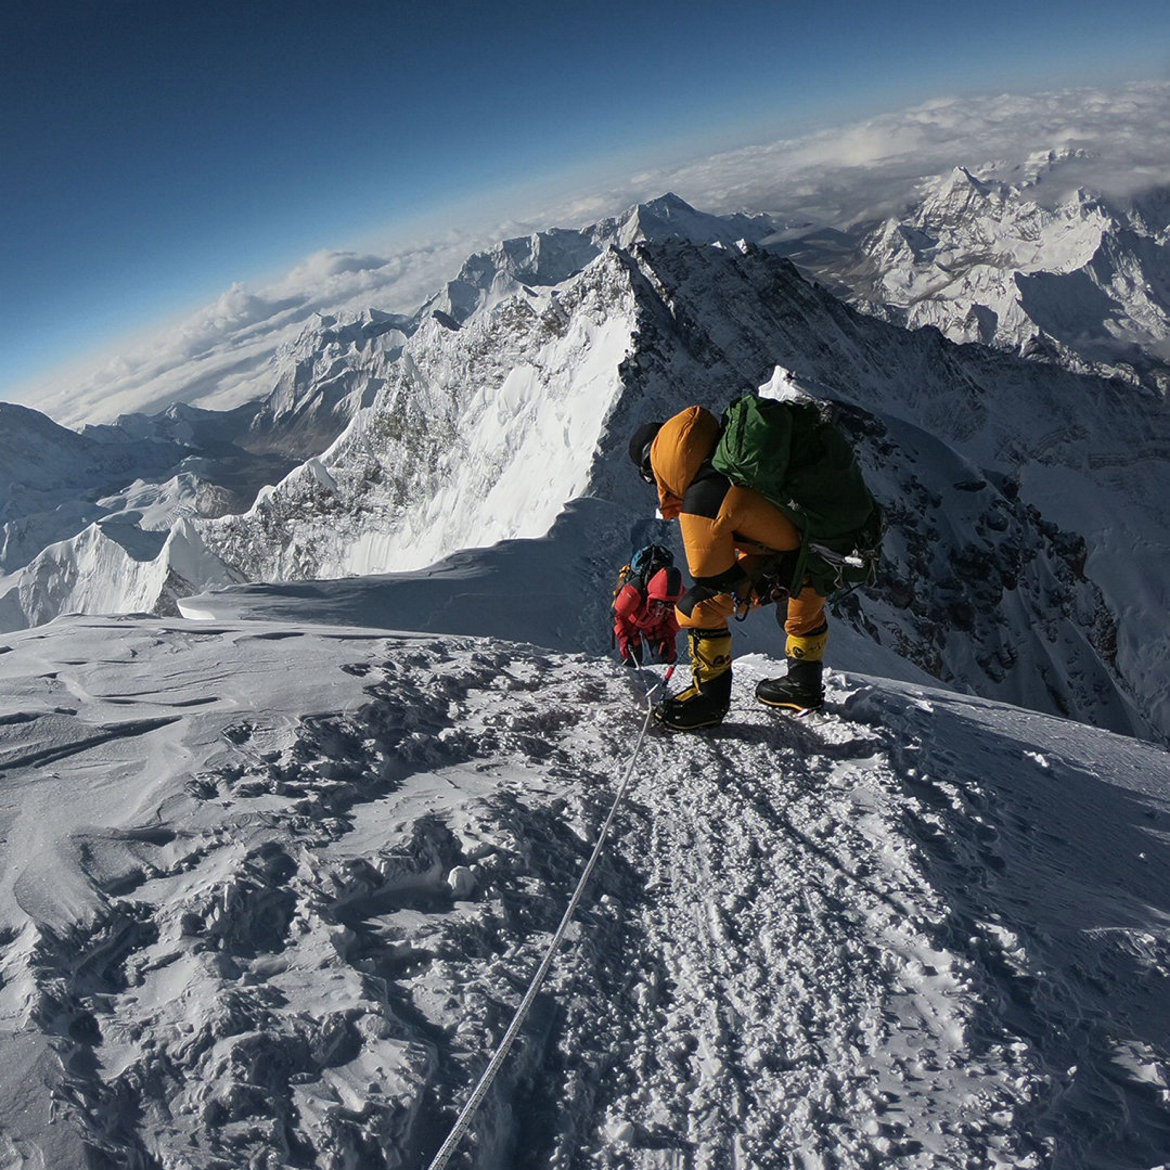 Not what it used to be: climbing Mount Everest